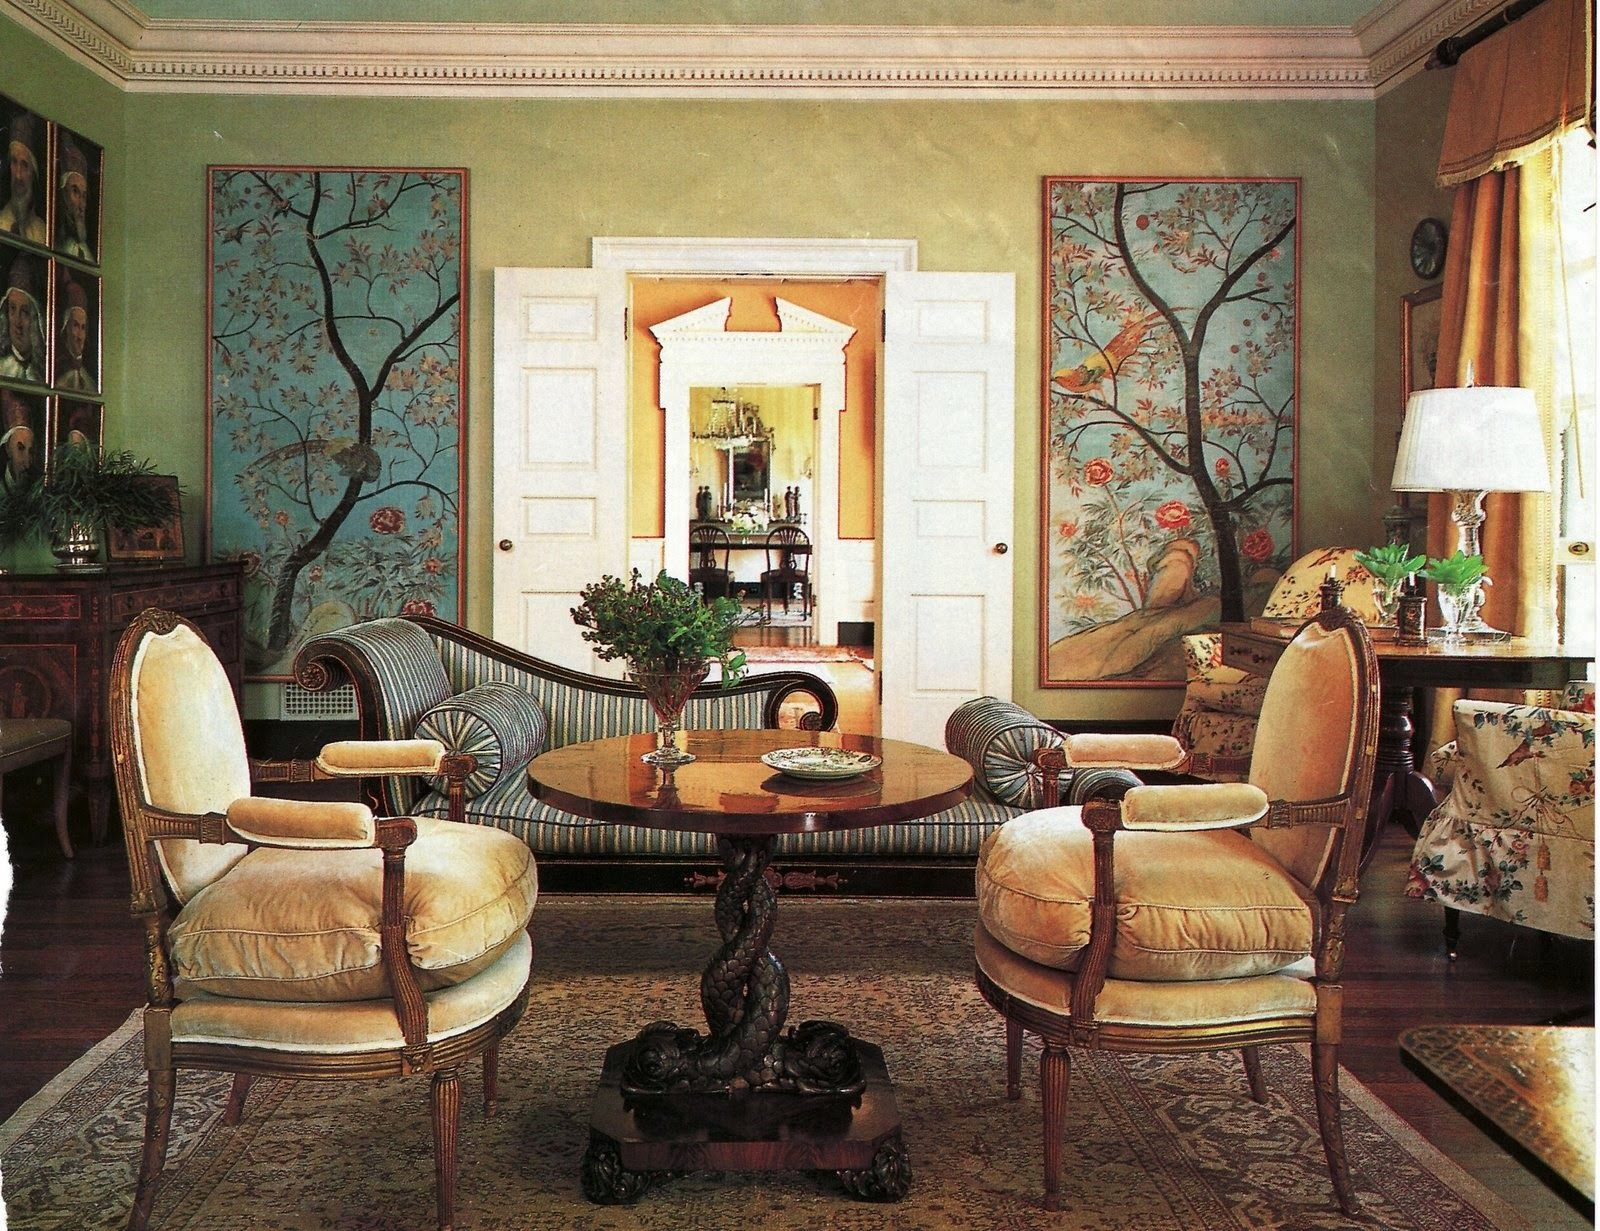 because wallpapering a room in hand painted chinoiserie wallpaper will cost you a small fortune. Panels are a much less costly, but equally beautiful solution if you have the desire without the dollars.